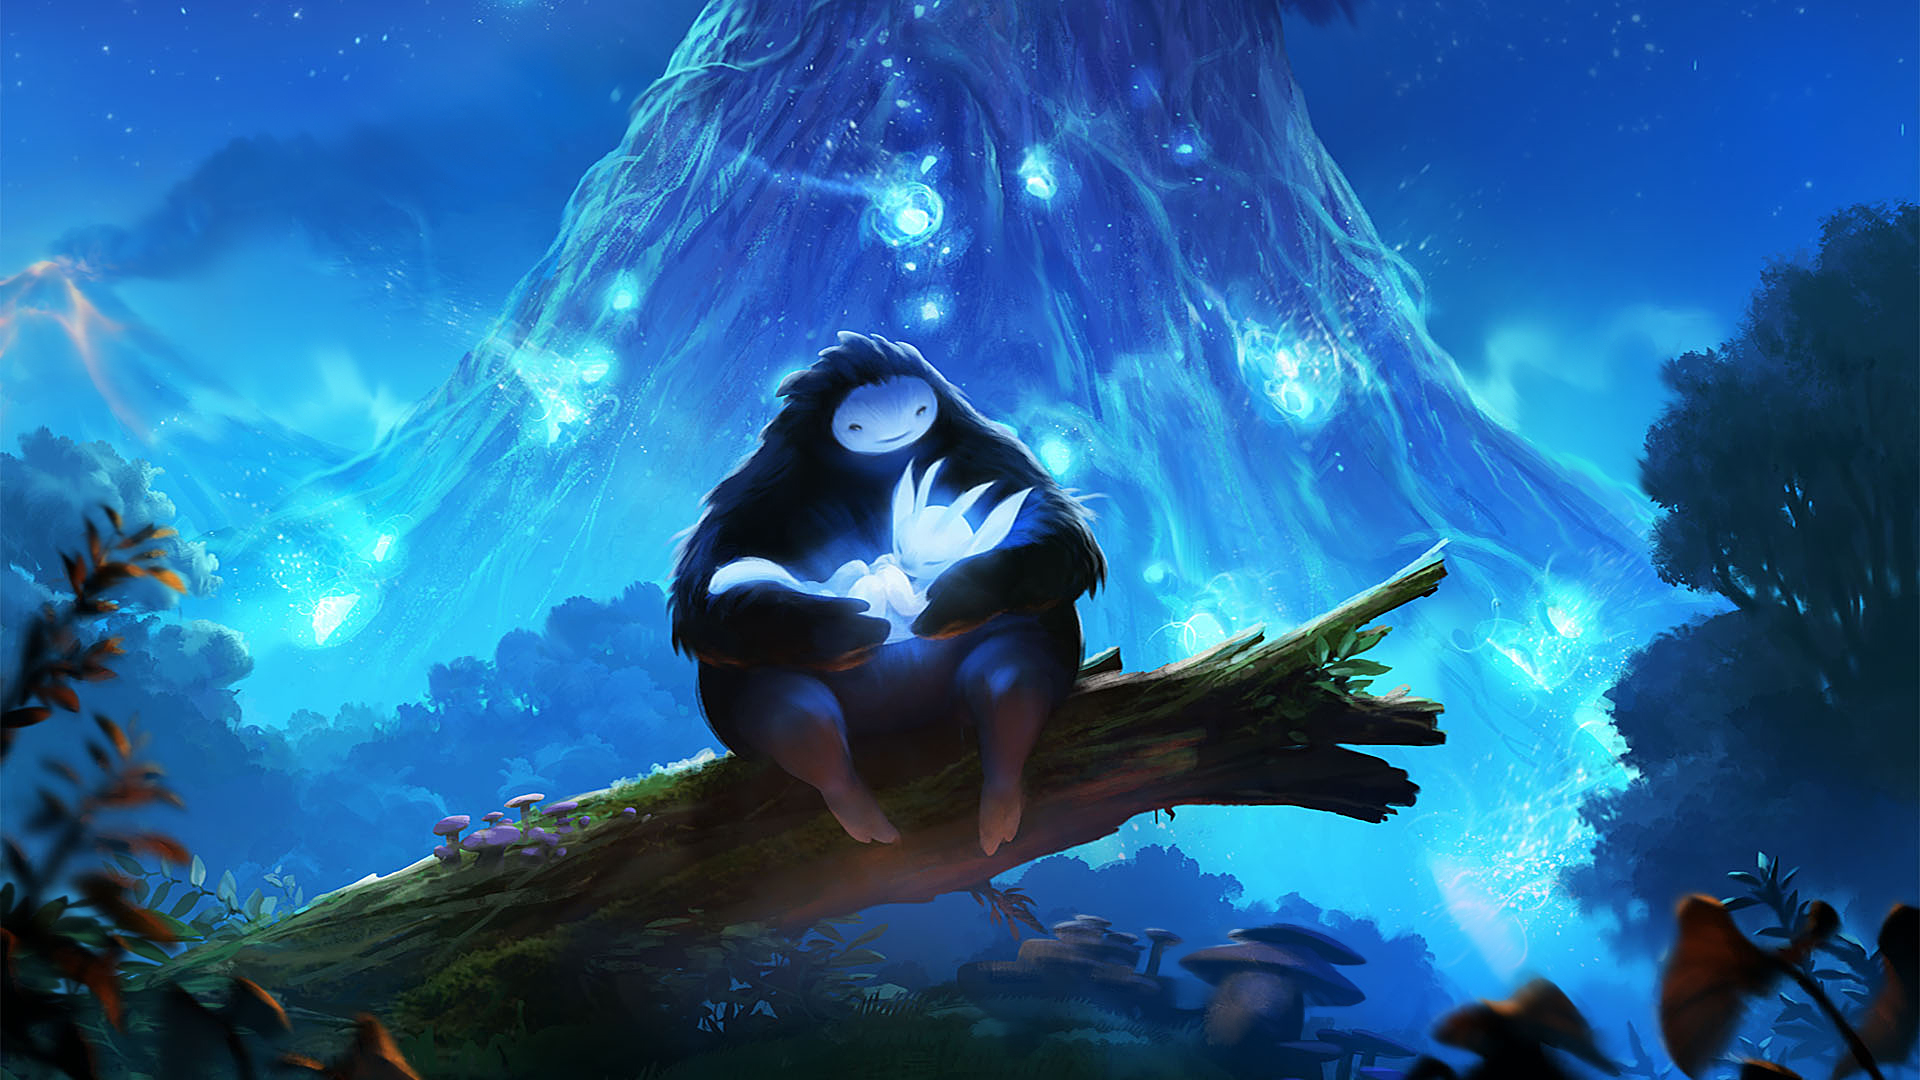 44 Ori and the Blind Forest HD Wallpapers Background Images - Wallpaper Abyss